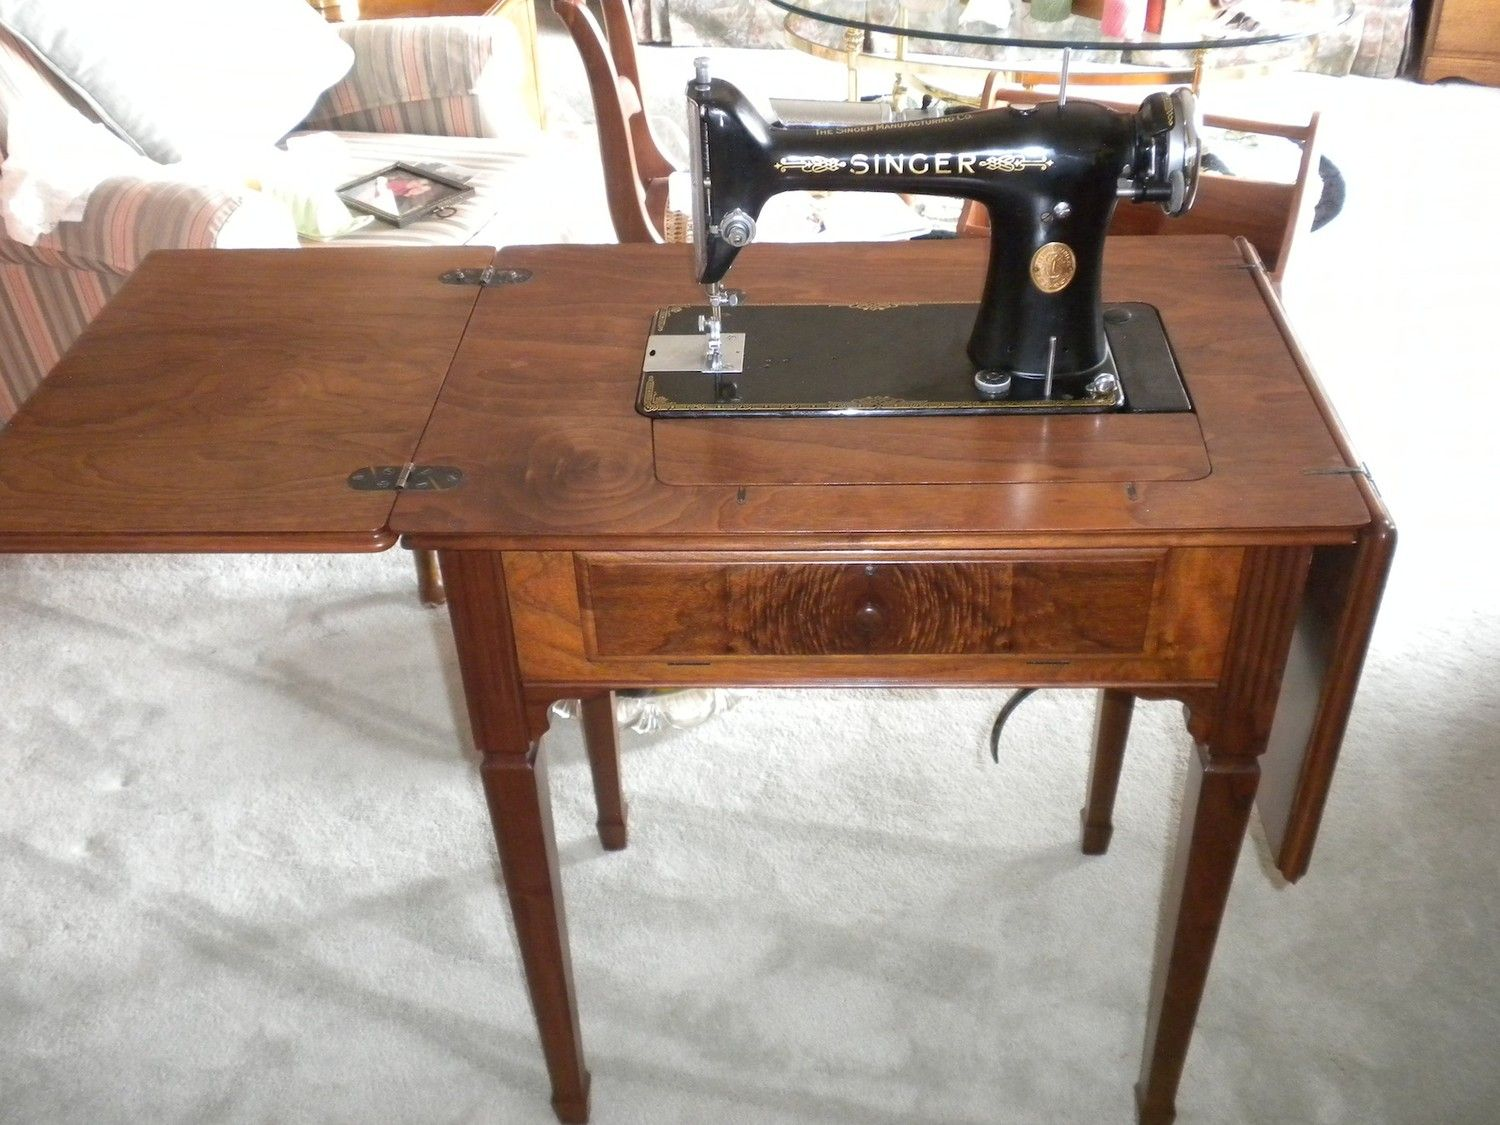 Vintage Singer 101 Sewing Machine and Cabinet Pick-up only shipping not  avaiable - Knee Pedal Sewing Machine Cabinet Bath Vanity - Google Search